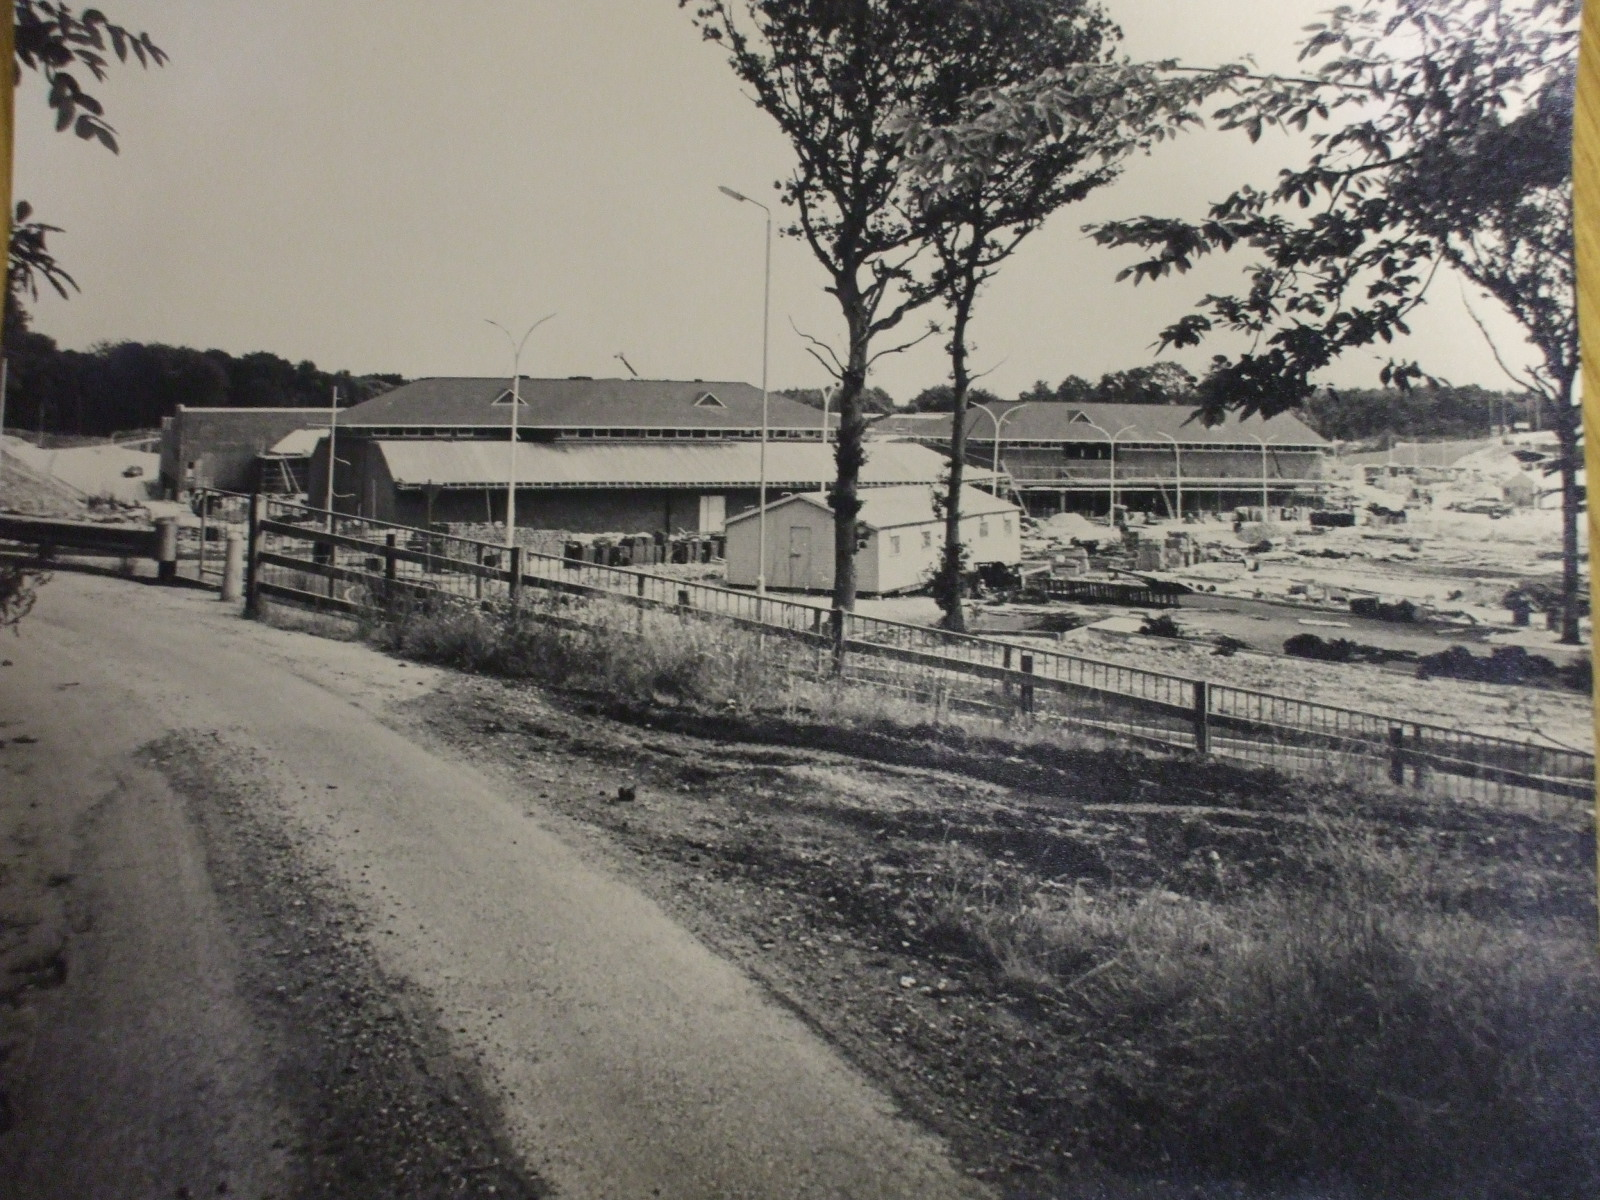 Photos of Hempstead Valley Savacentre 1978